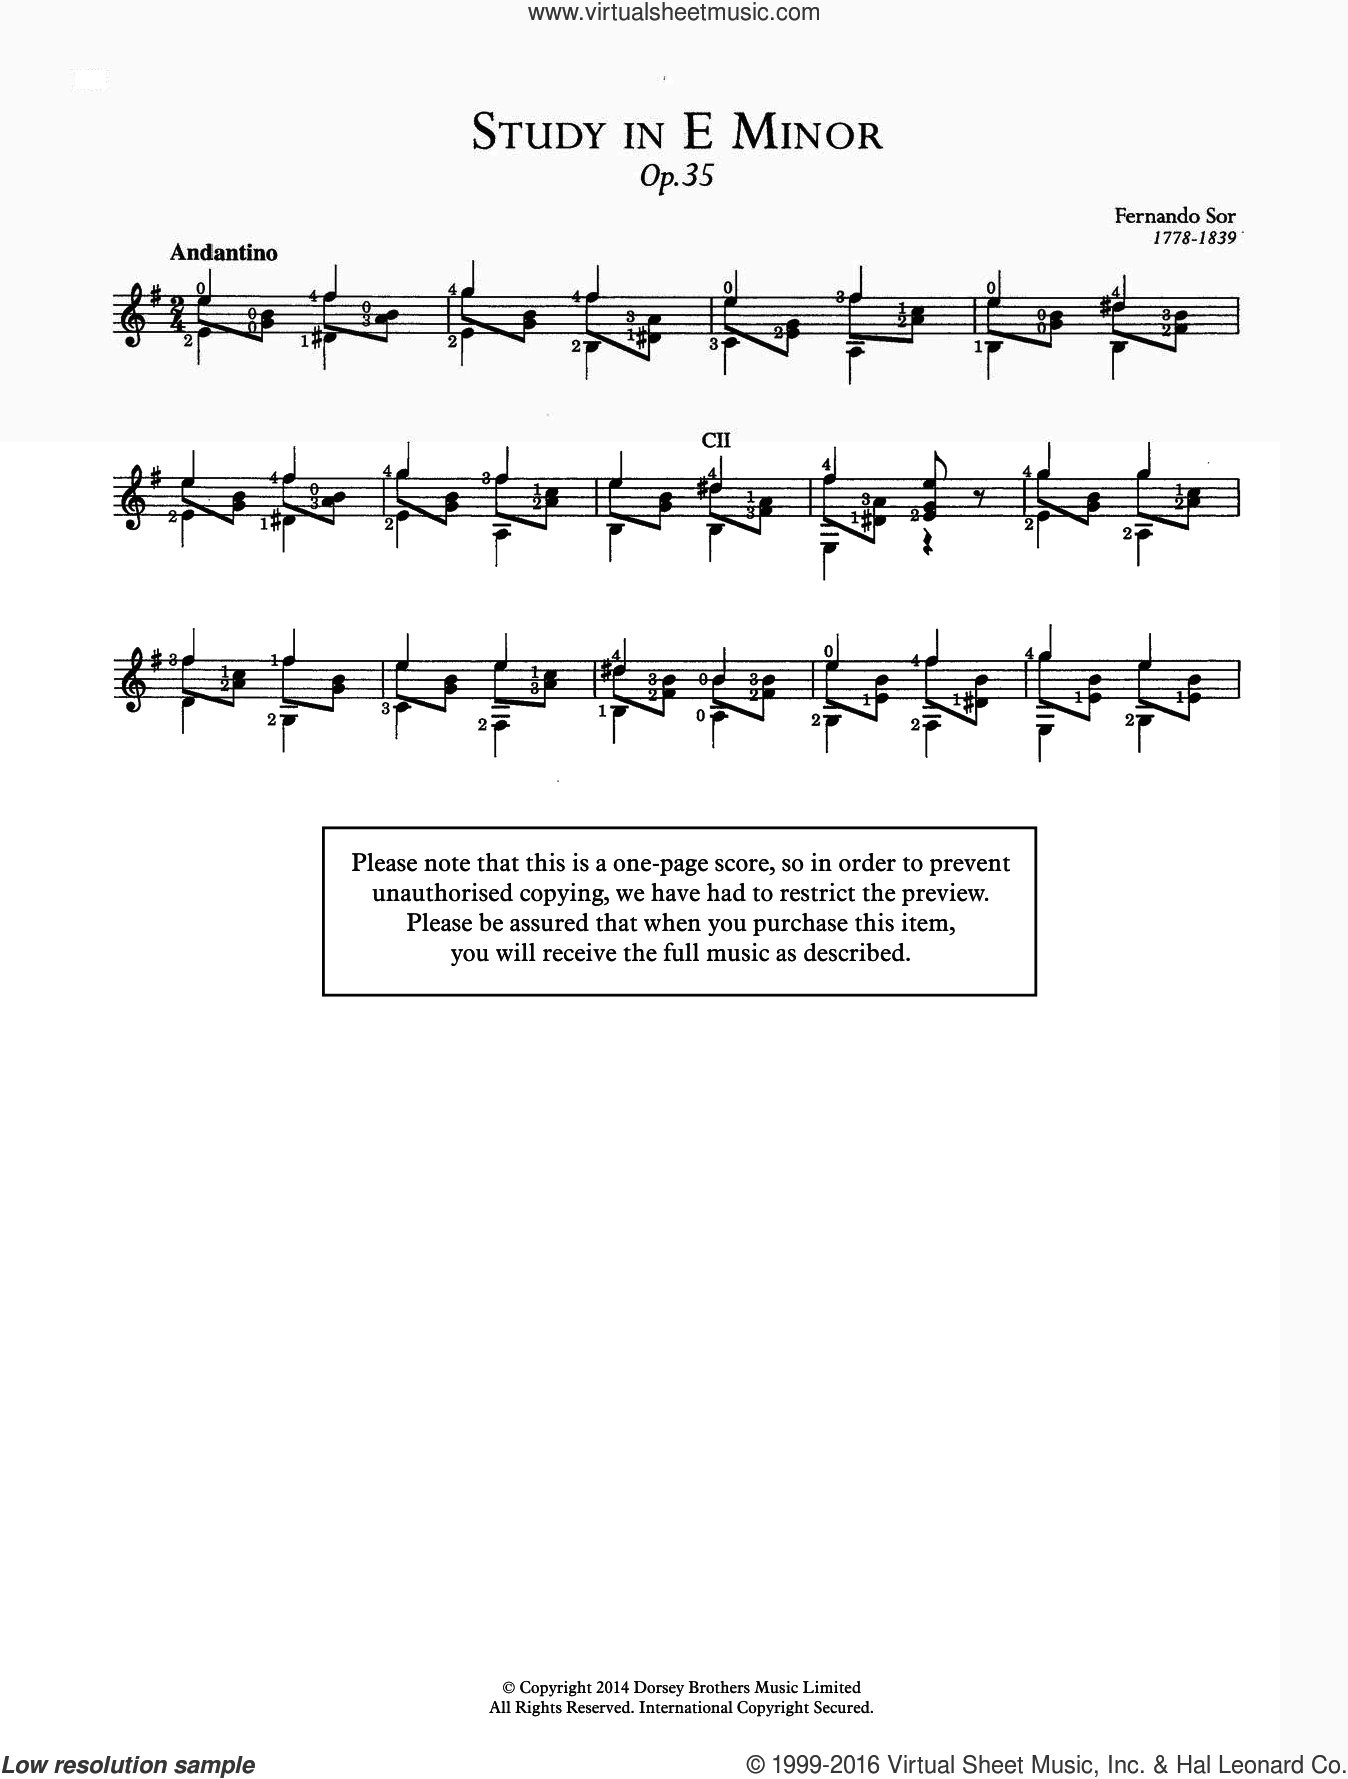 Study In E Minor, Op.35 sheet music for guitar solo (chords) by Fernando Sor, classical score, easy guitar (chords). Score Image Preview.